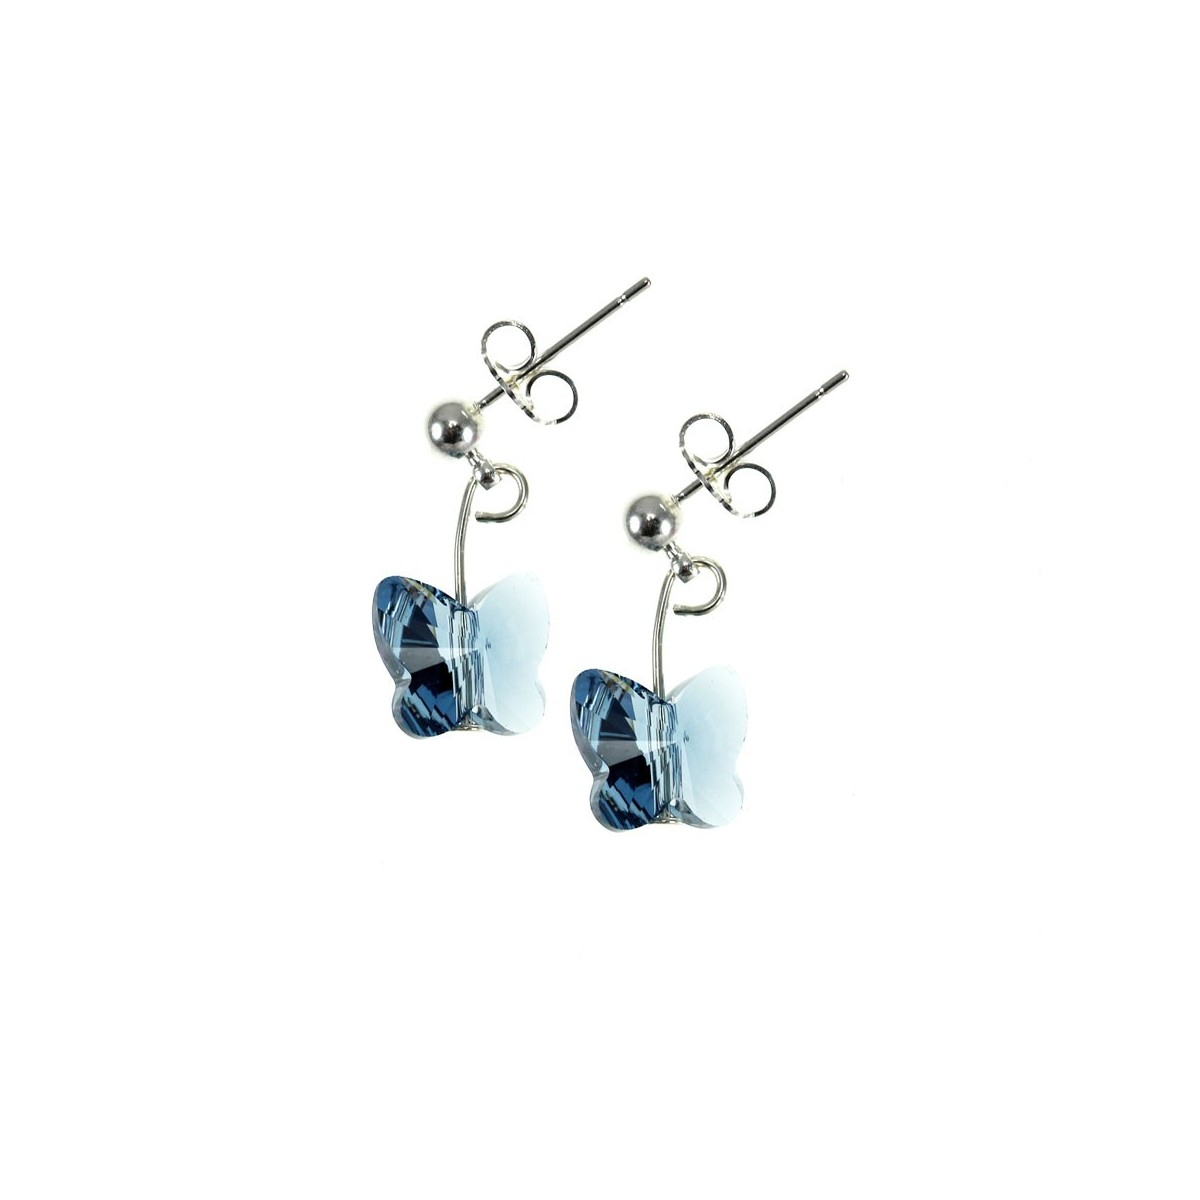 Boucles d'oreilles So Charm made with Crystal from Swarovski bleu